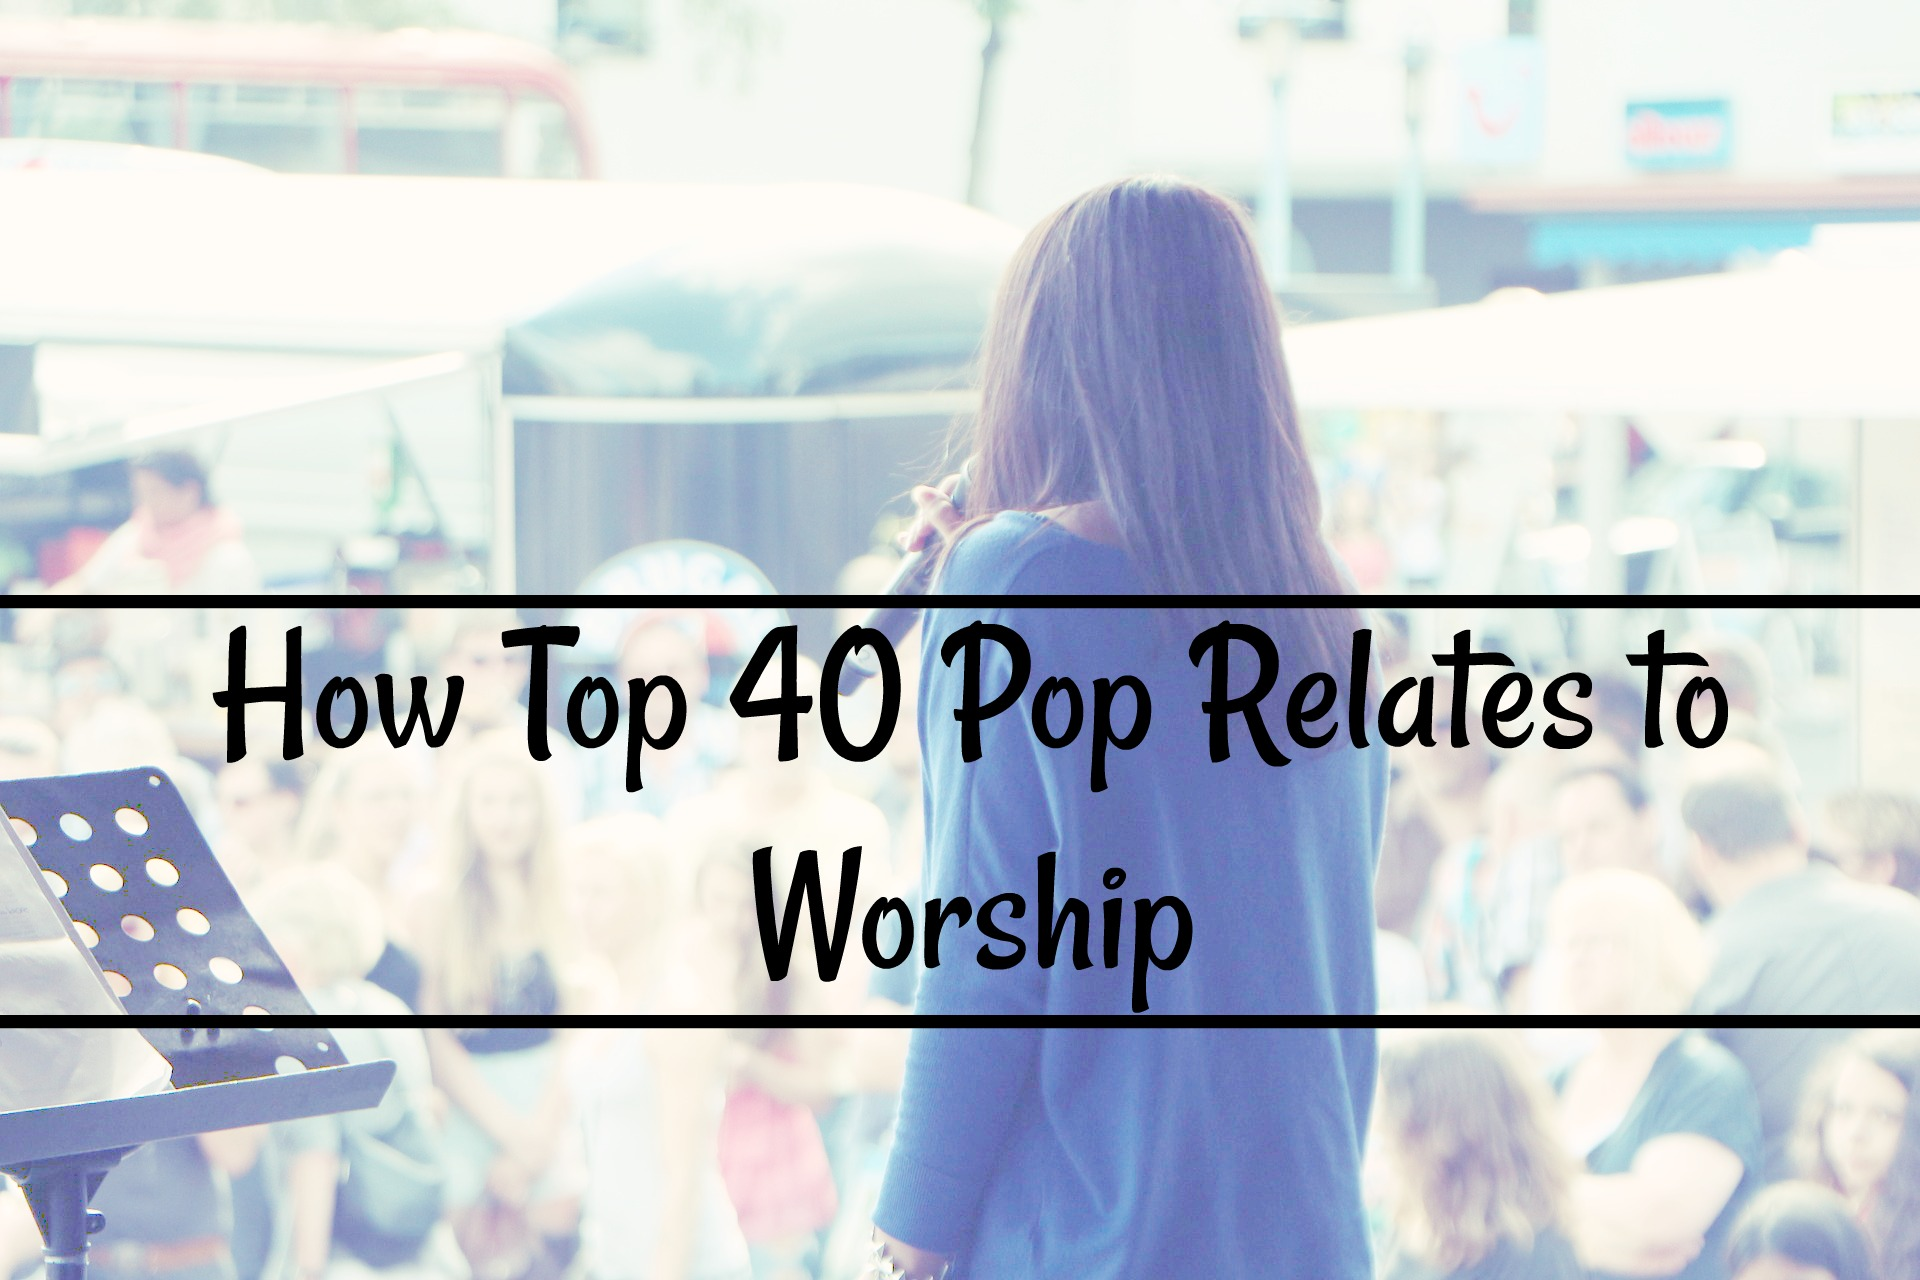 how top 40 pop relates to worship